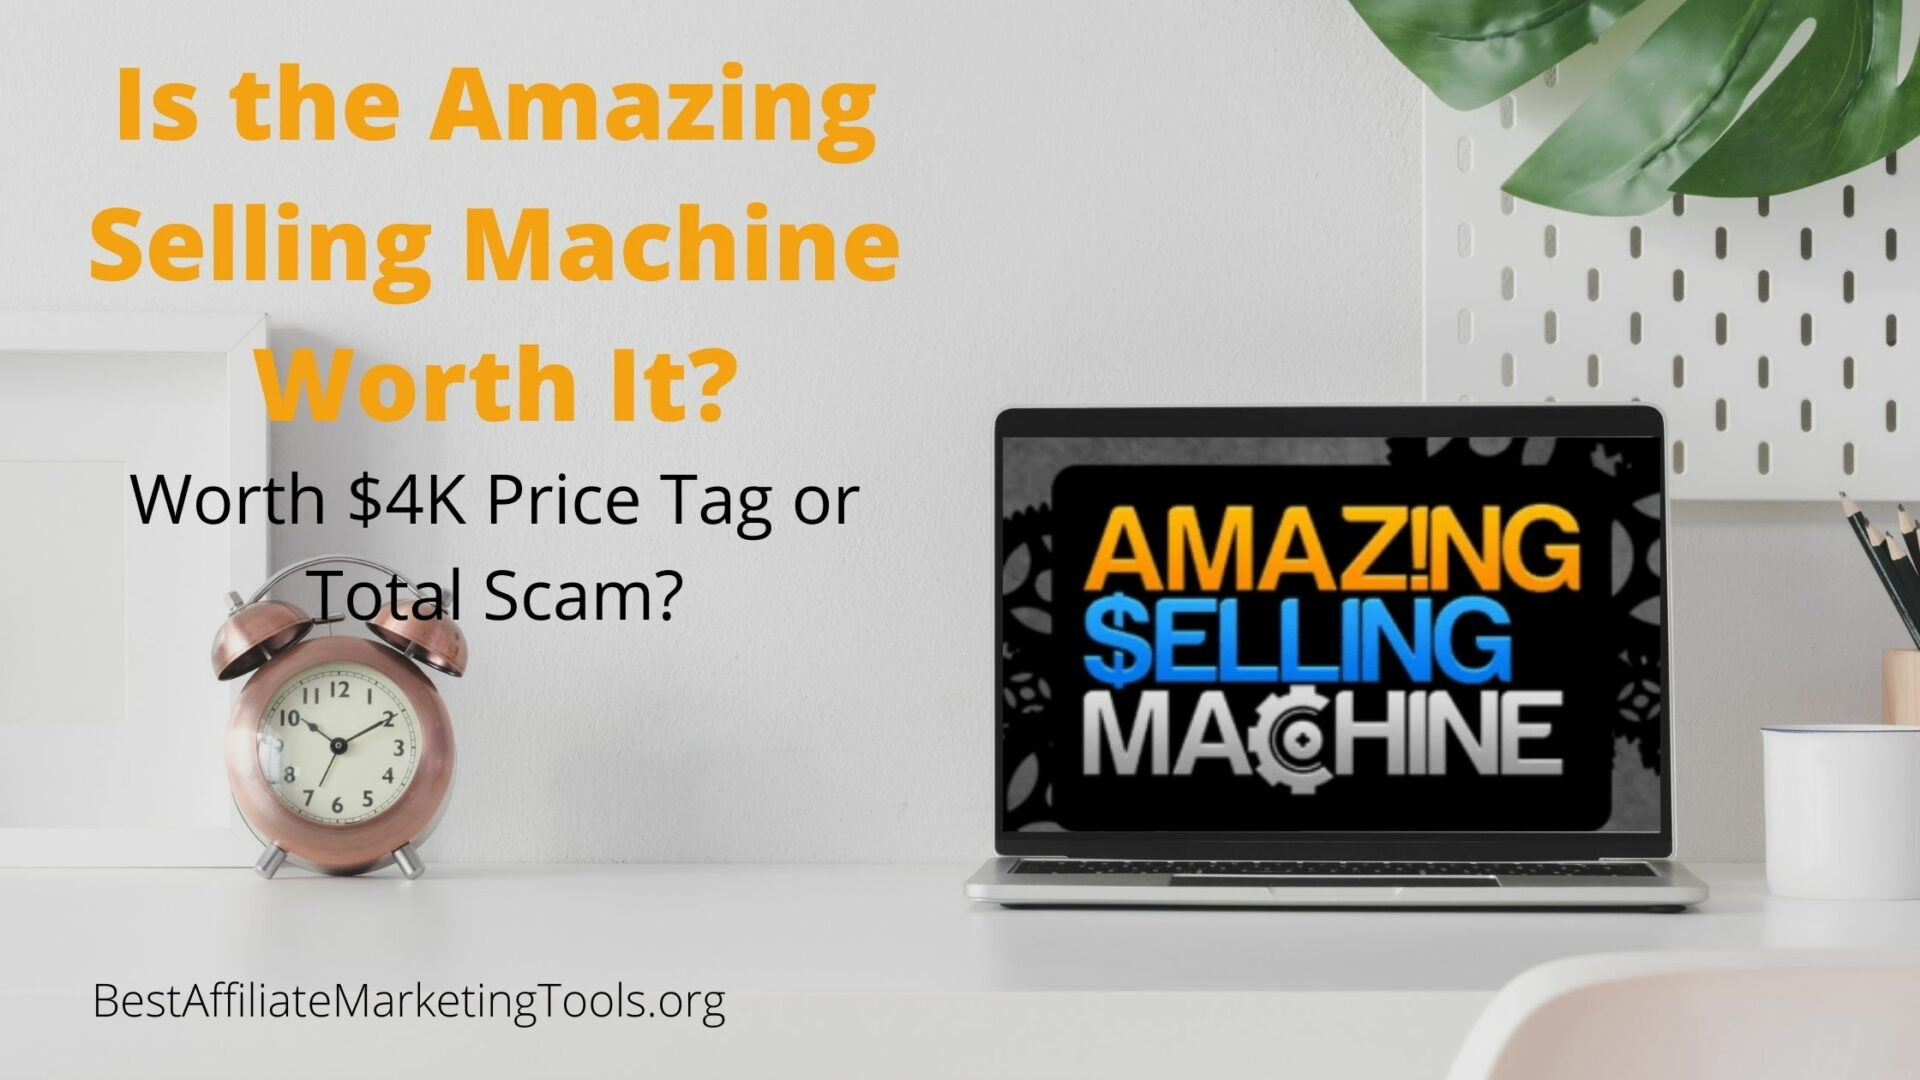 Is the Amazing Selling Machine Worth It